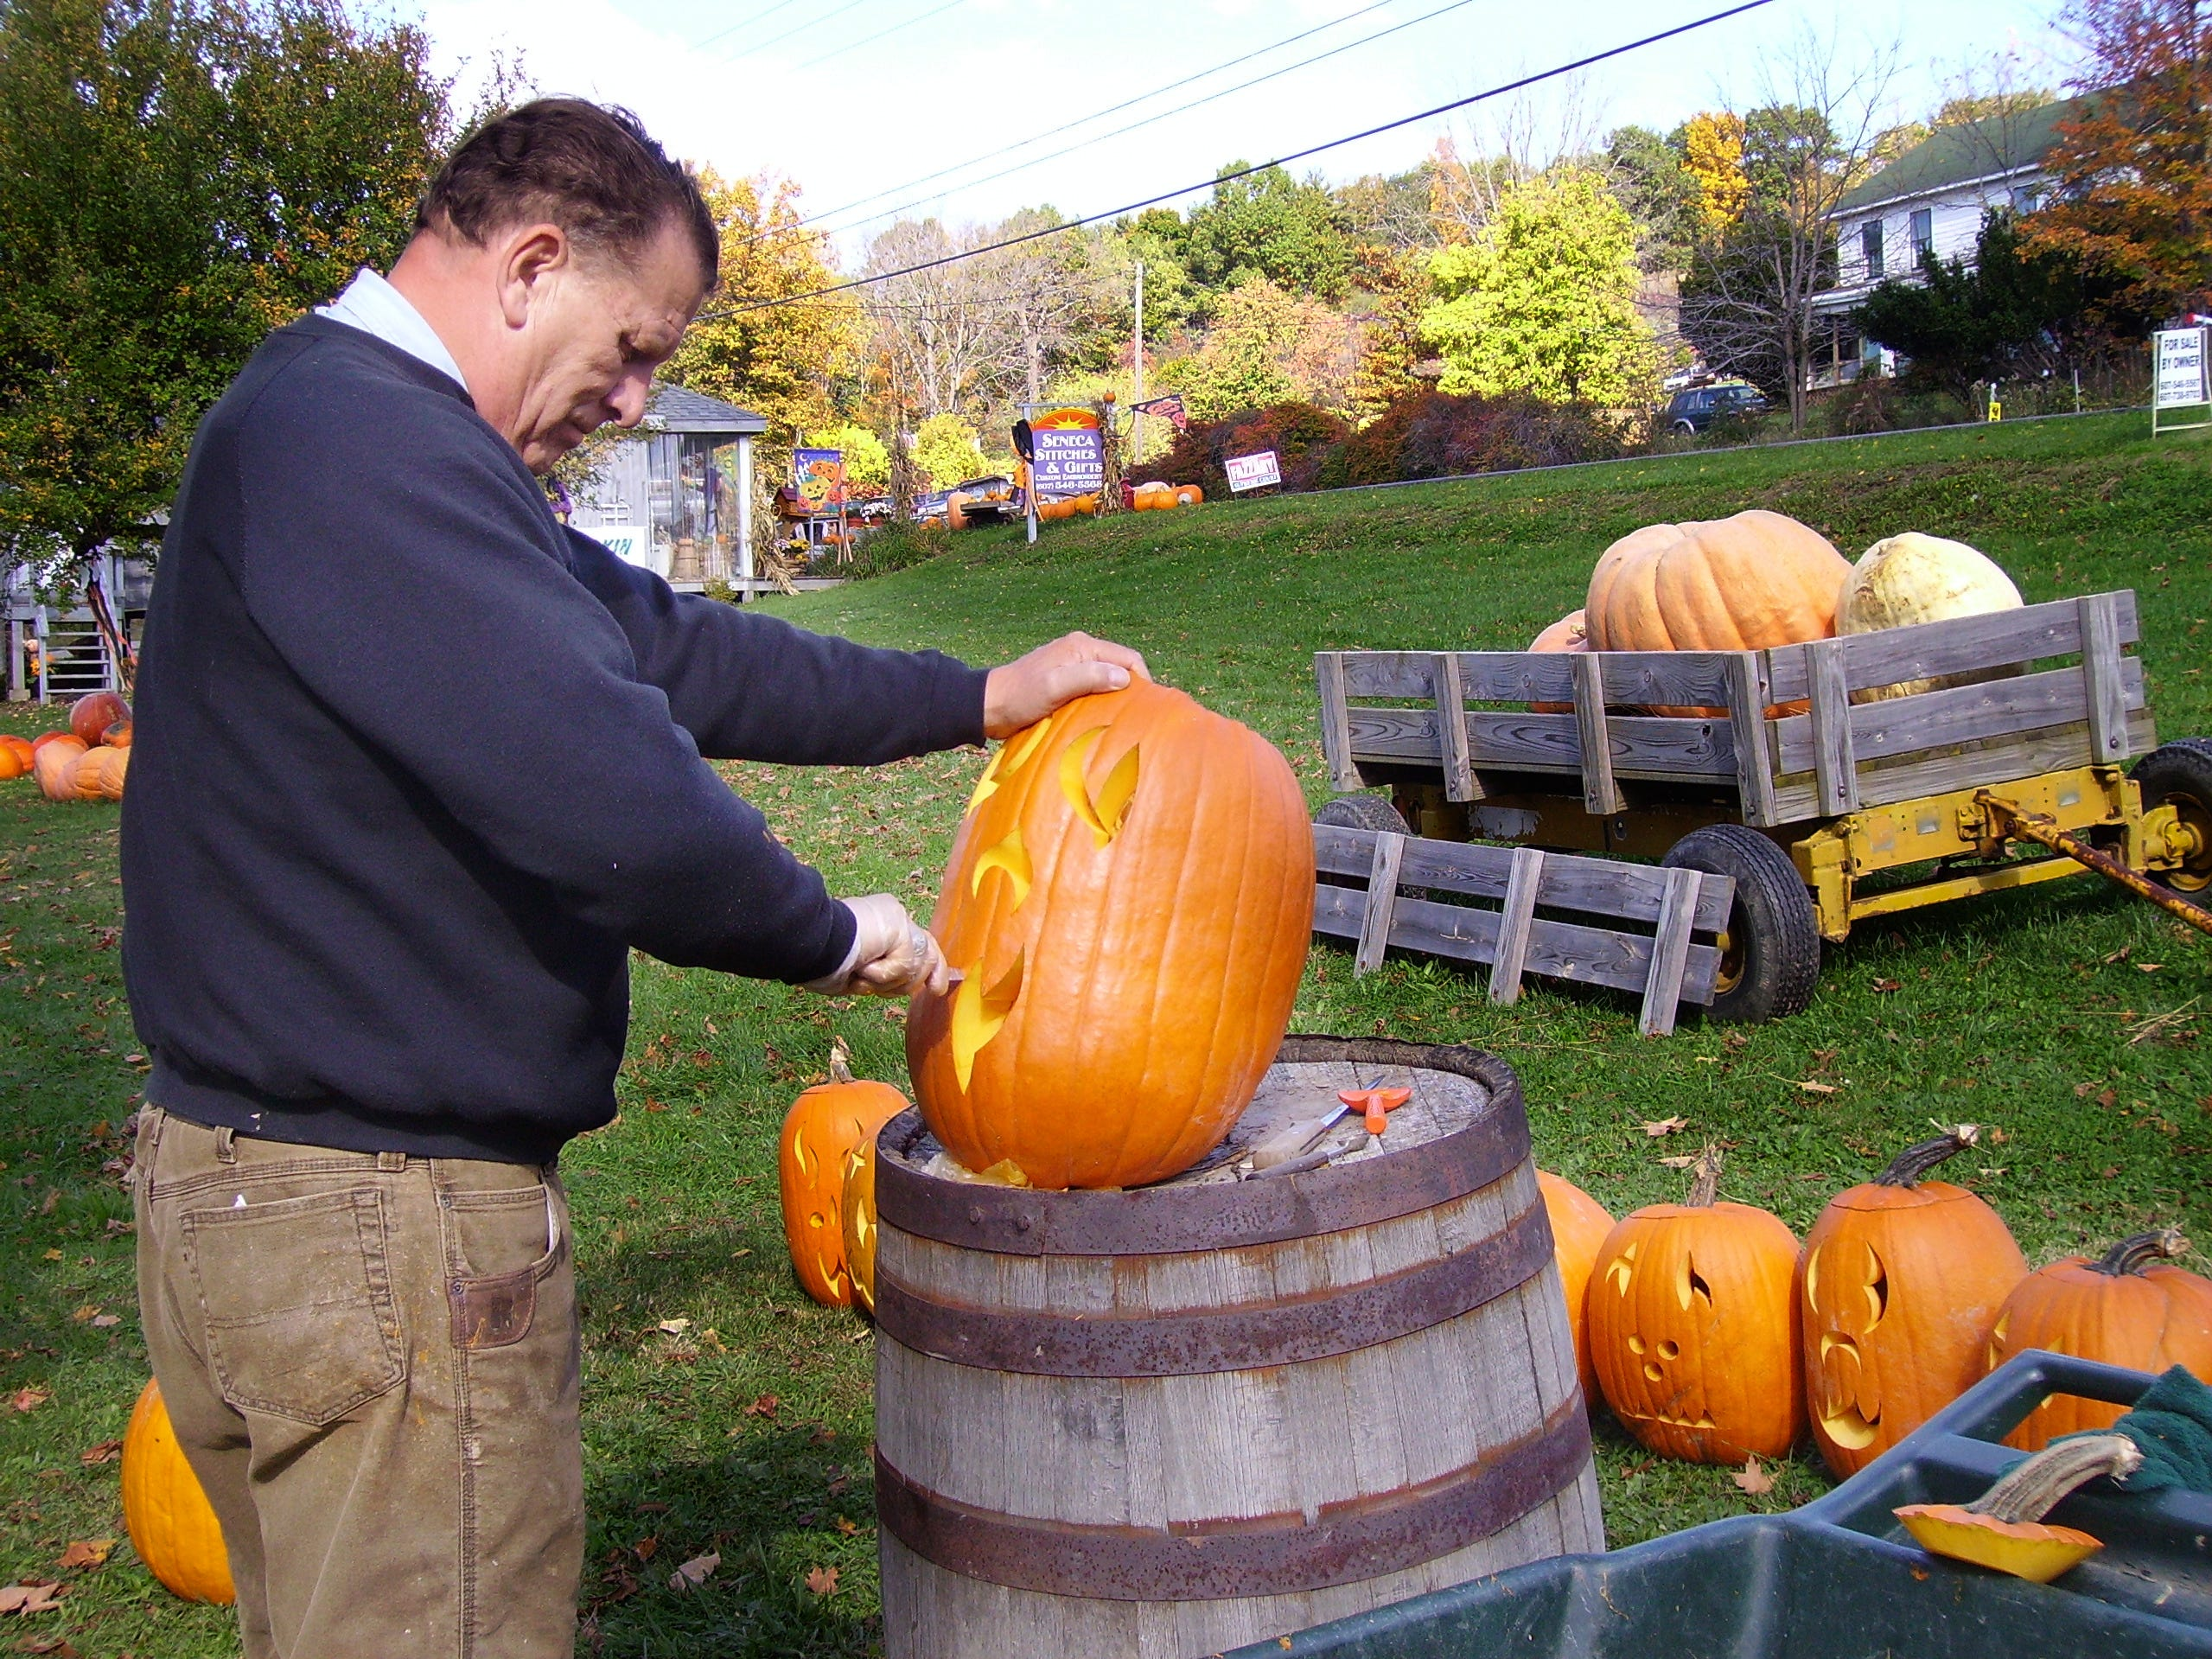 2007: Robert Kappenberg carves a pumpkin in the front yard of his Route 414 home in Hector, preparing for his annual Halloween pumpkin exhibit Tuesday and Wednesday nights. By the time he lights the candles in each pumpkin, he will have carved between 150 and 200 pumpkins.